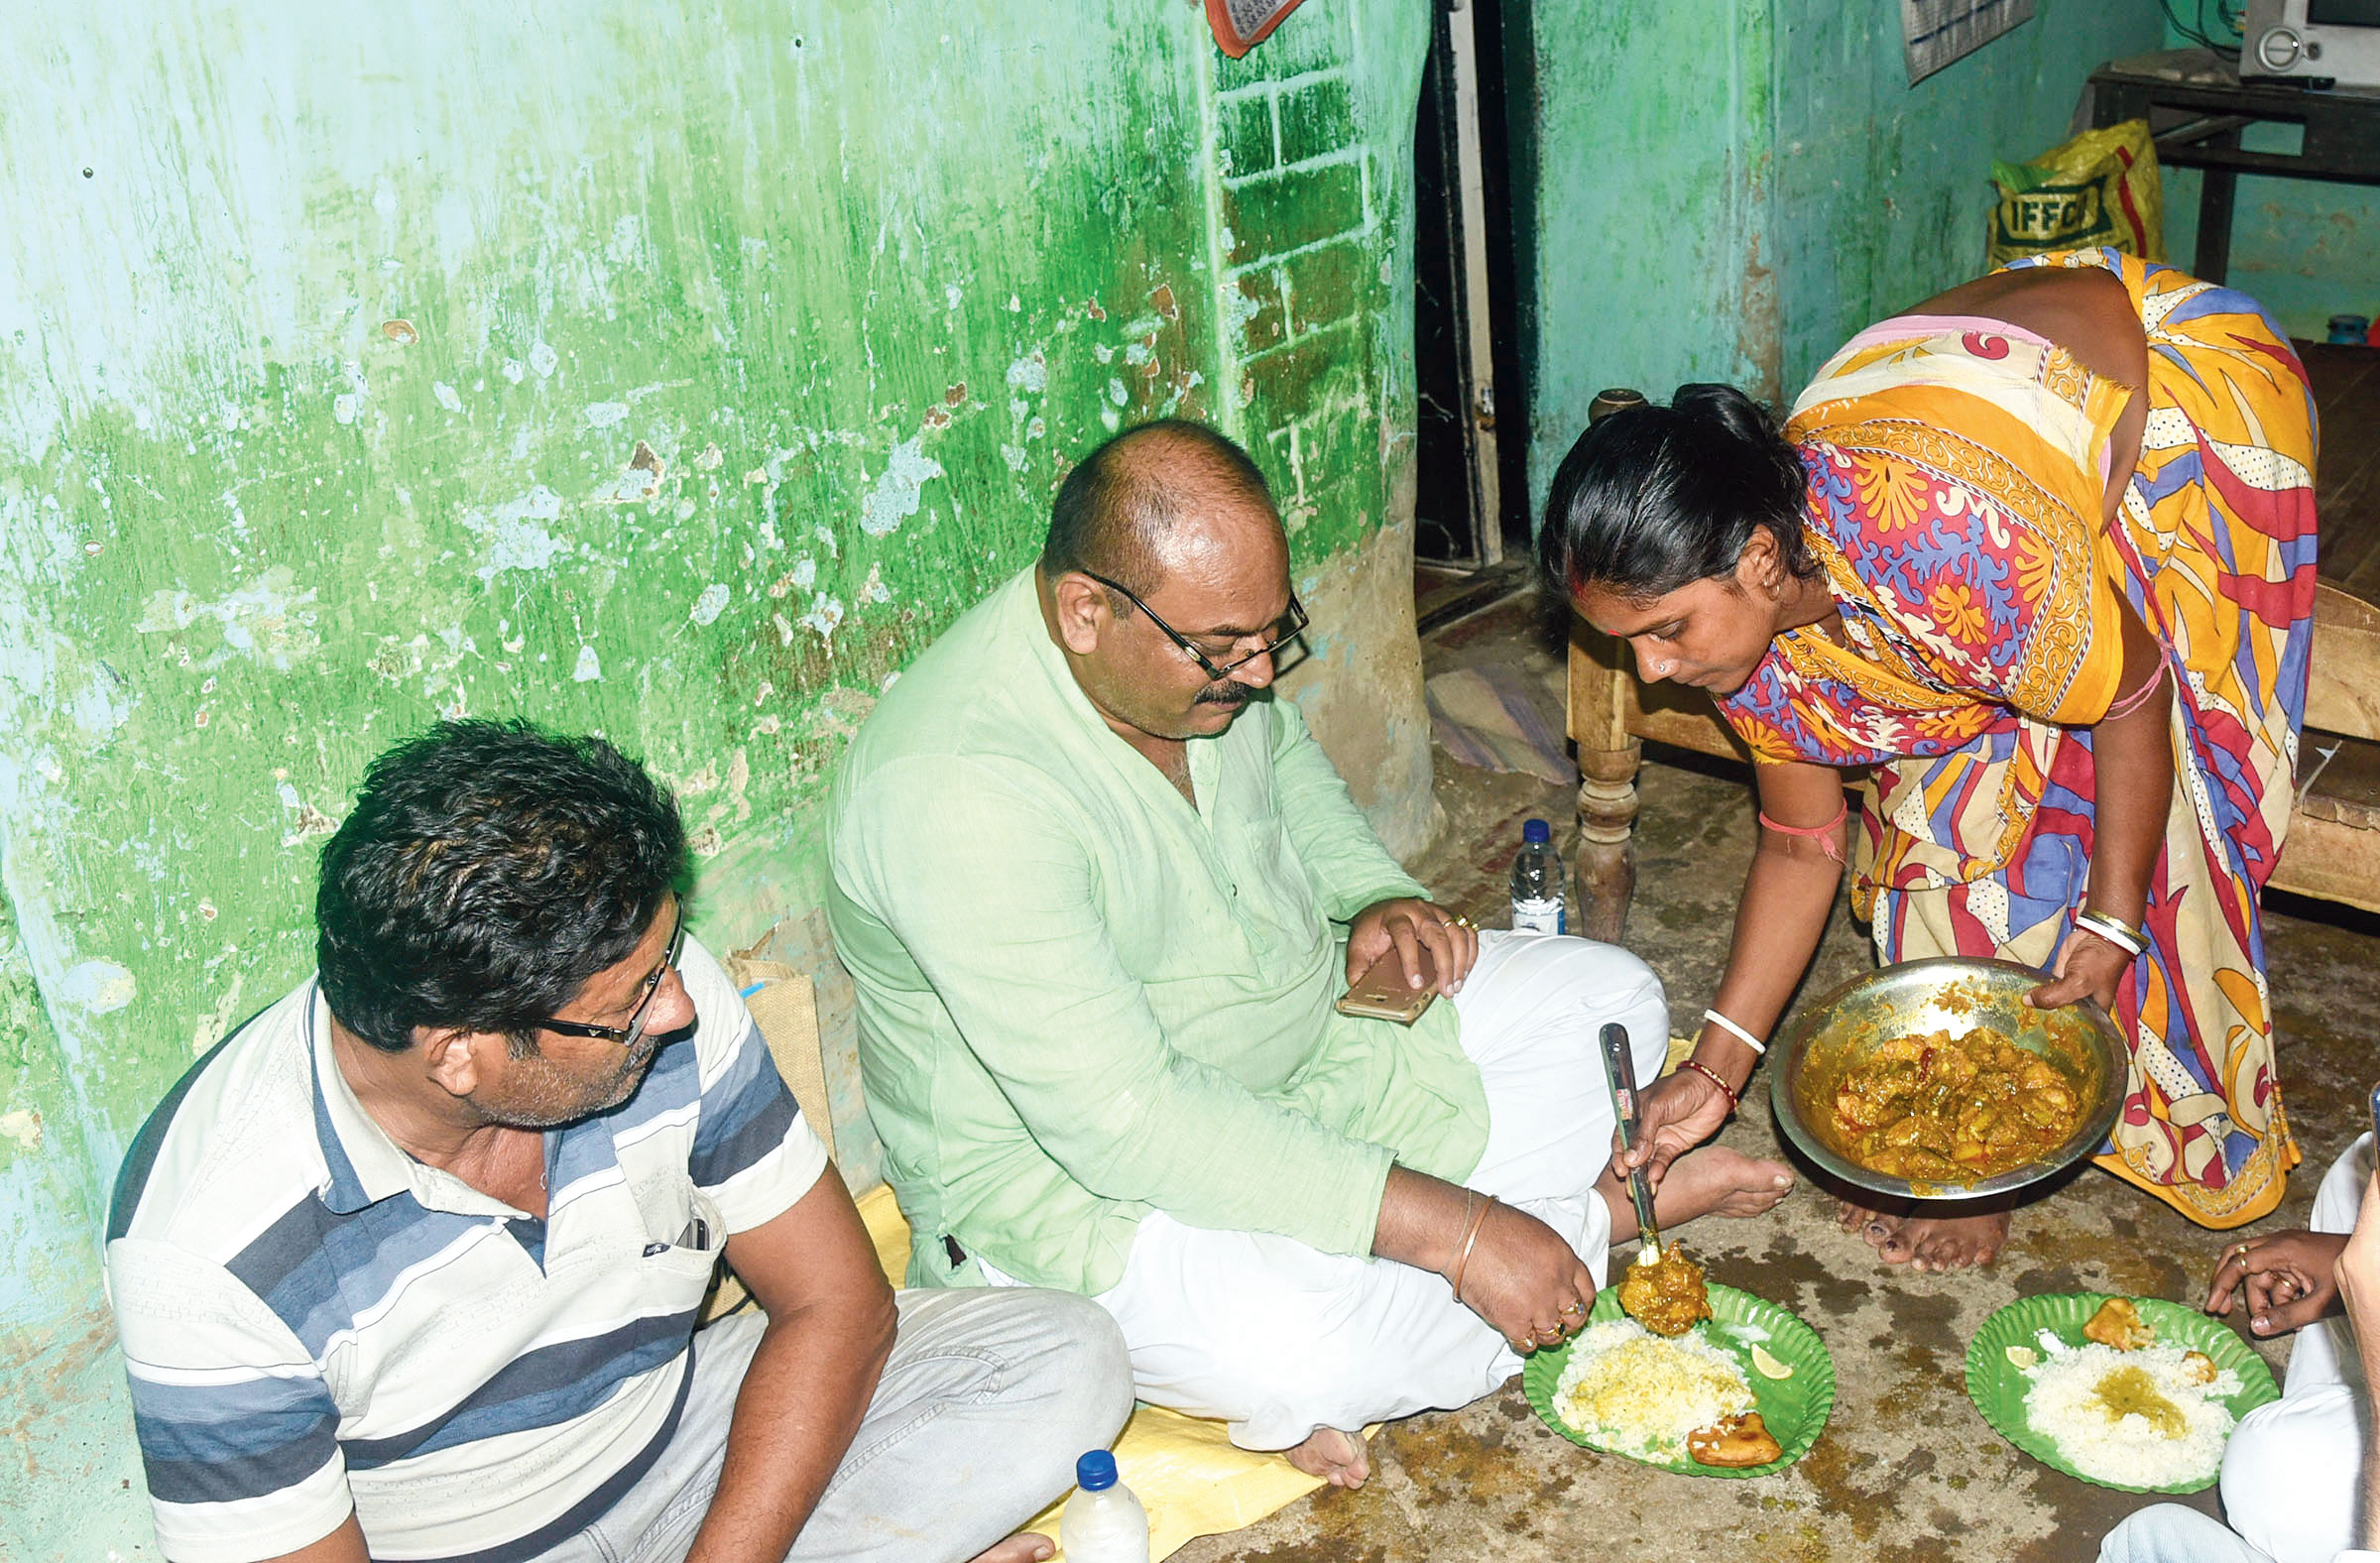 Sinha is served dinner at a Trinamul worker's home in Birbhum's Baruipur village.